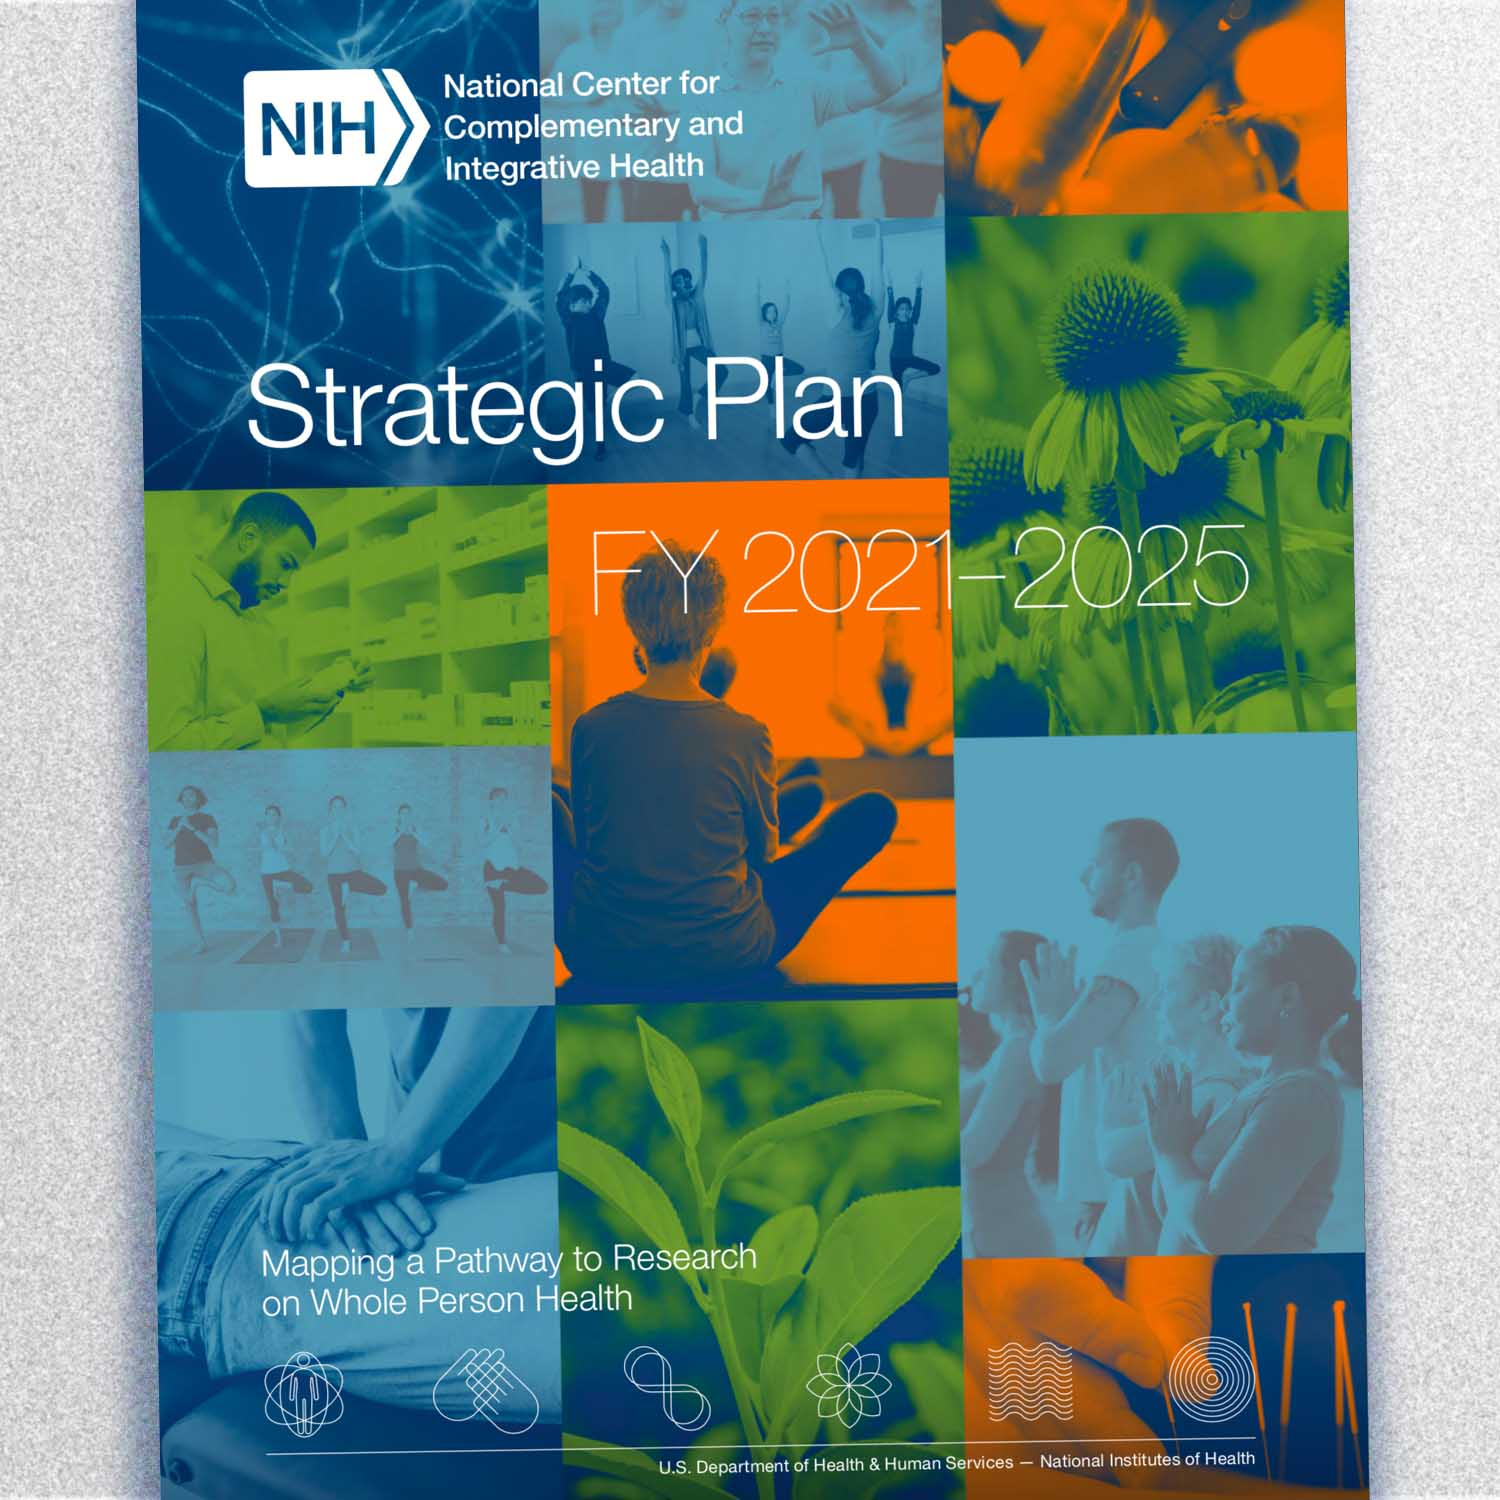 Strategic Plan cover image for homepage highlights